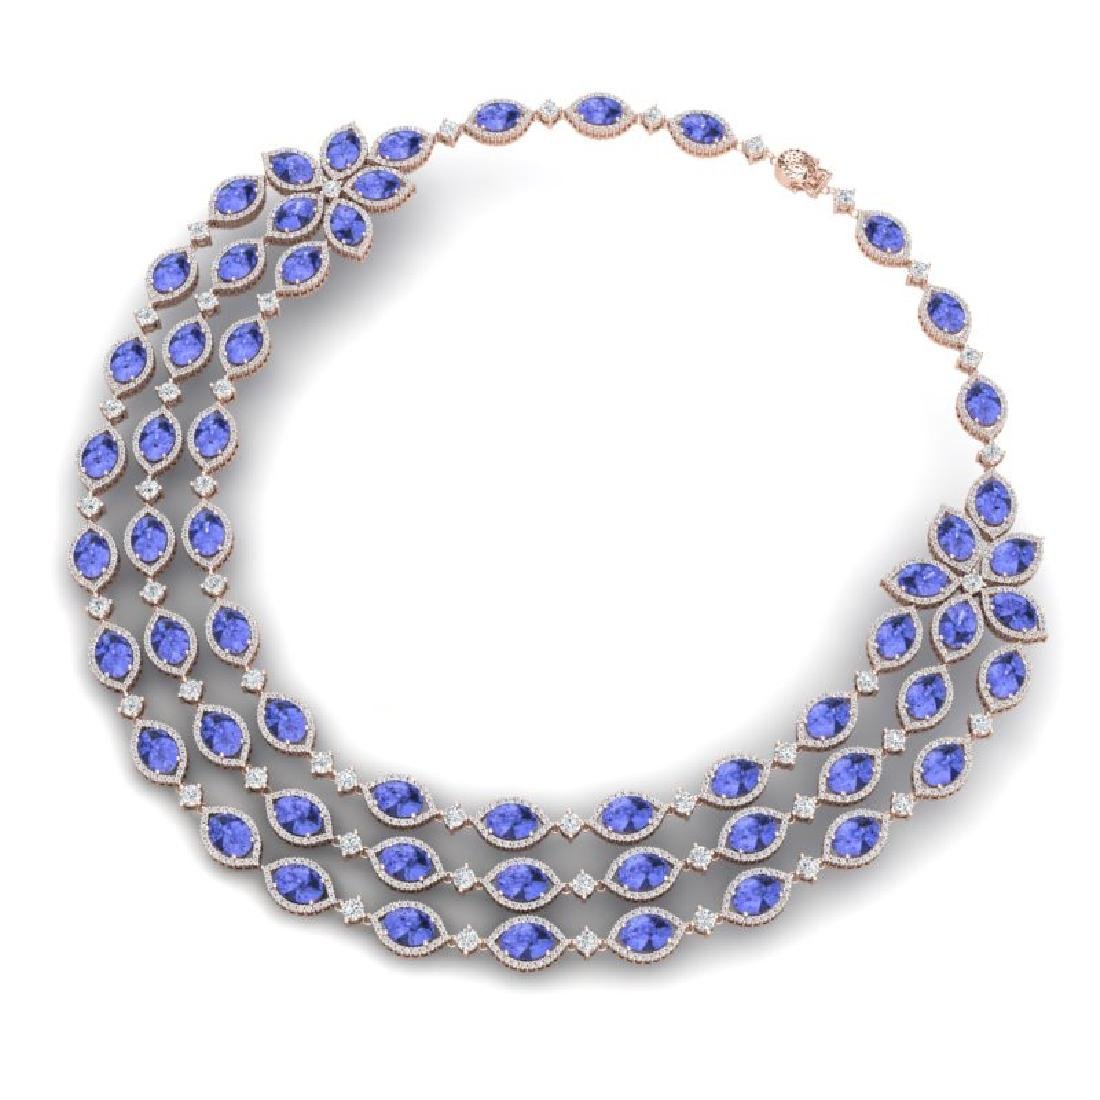 79.33 CTW Royalty Tanzanite & VS Diamond Necklace 18K - 3